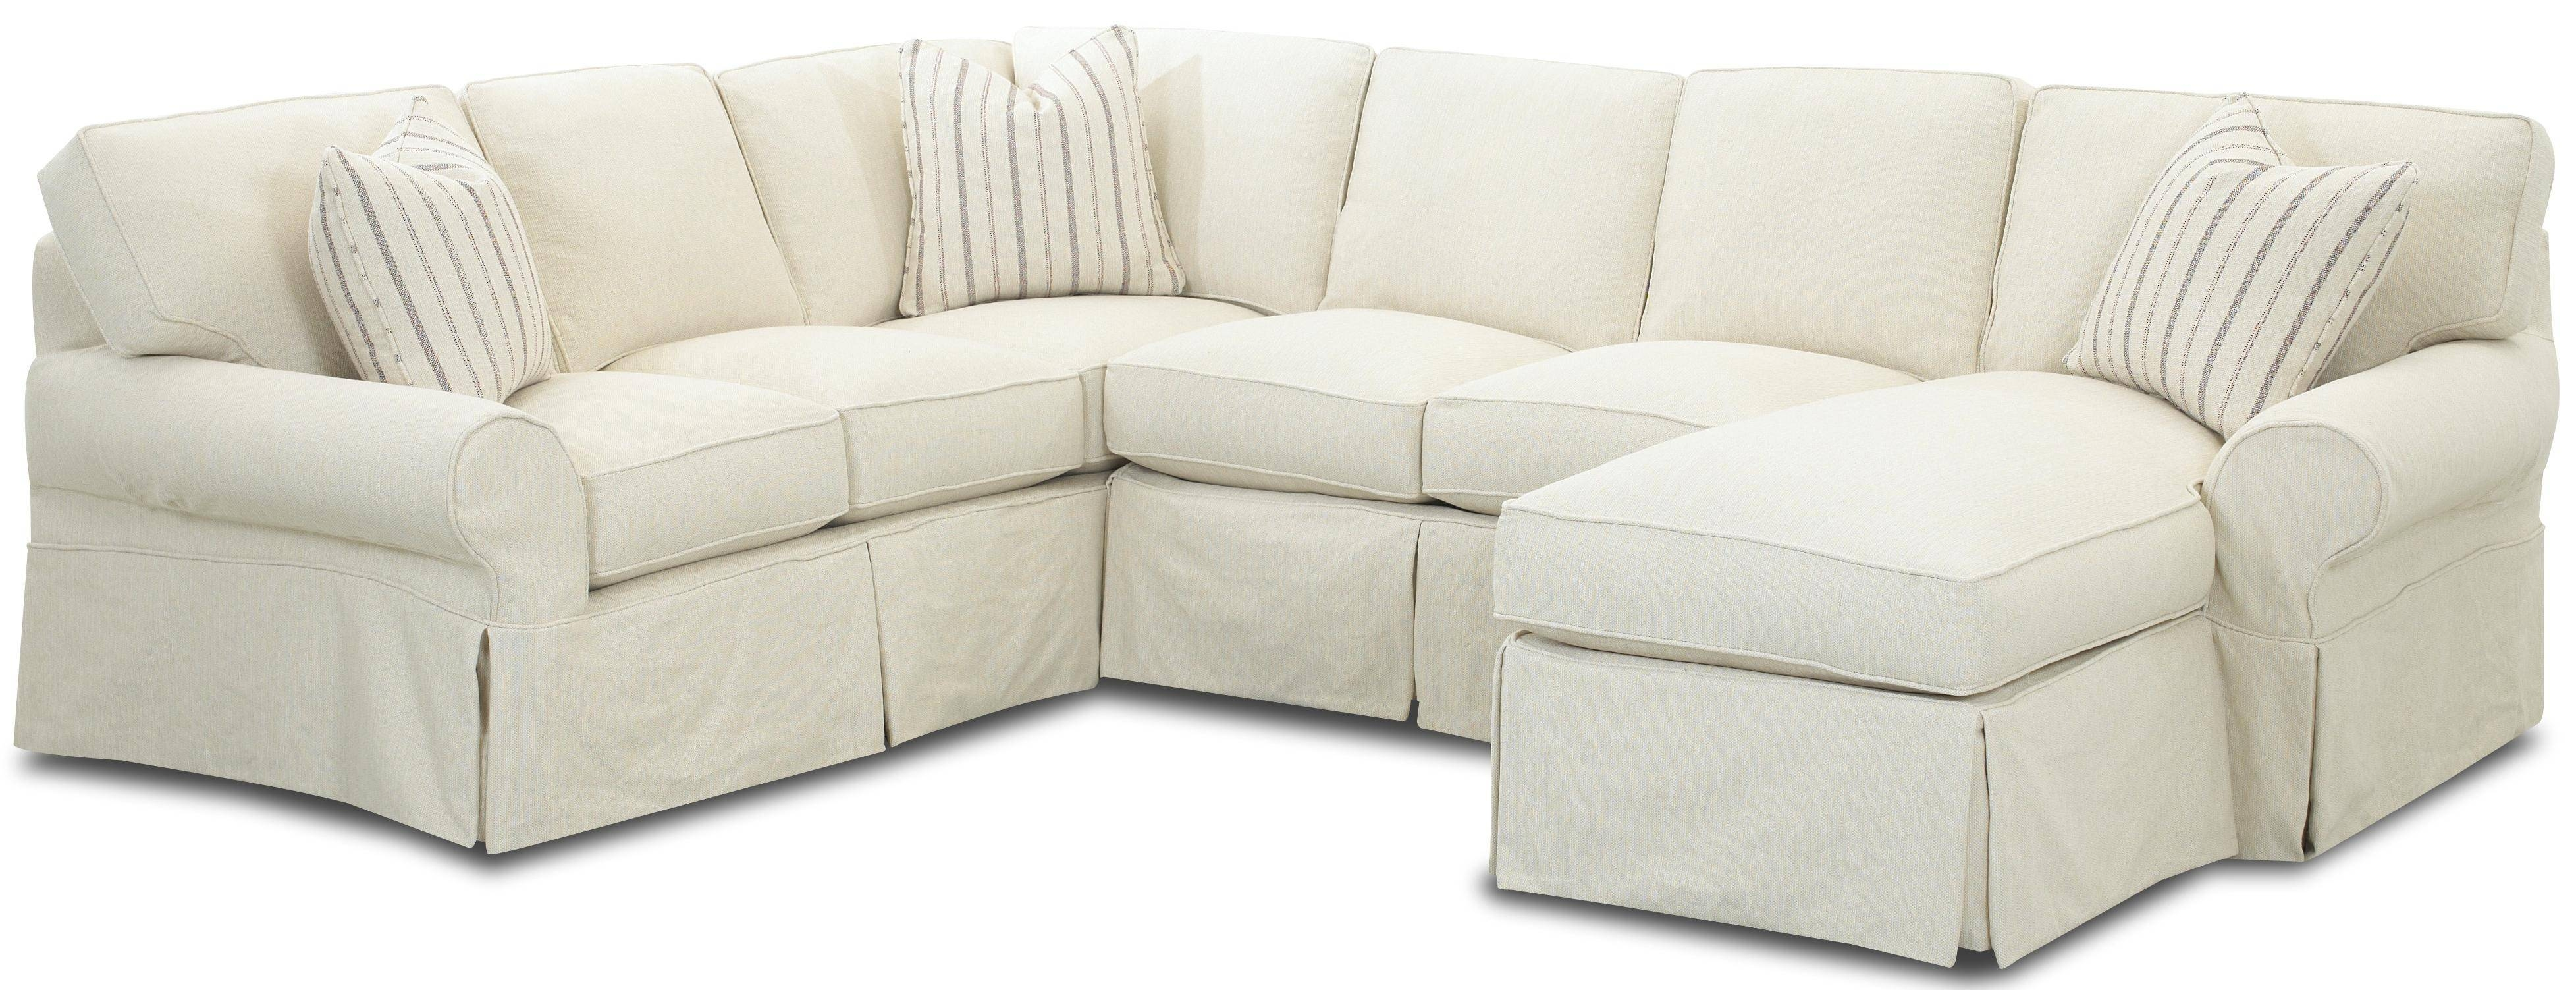 Furniture: Minimize Amount Of Fabric You Need To Tuck With with Slipcovers For Chaise Lounge Sofas (Image 6 of 15)